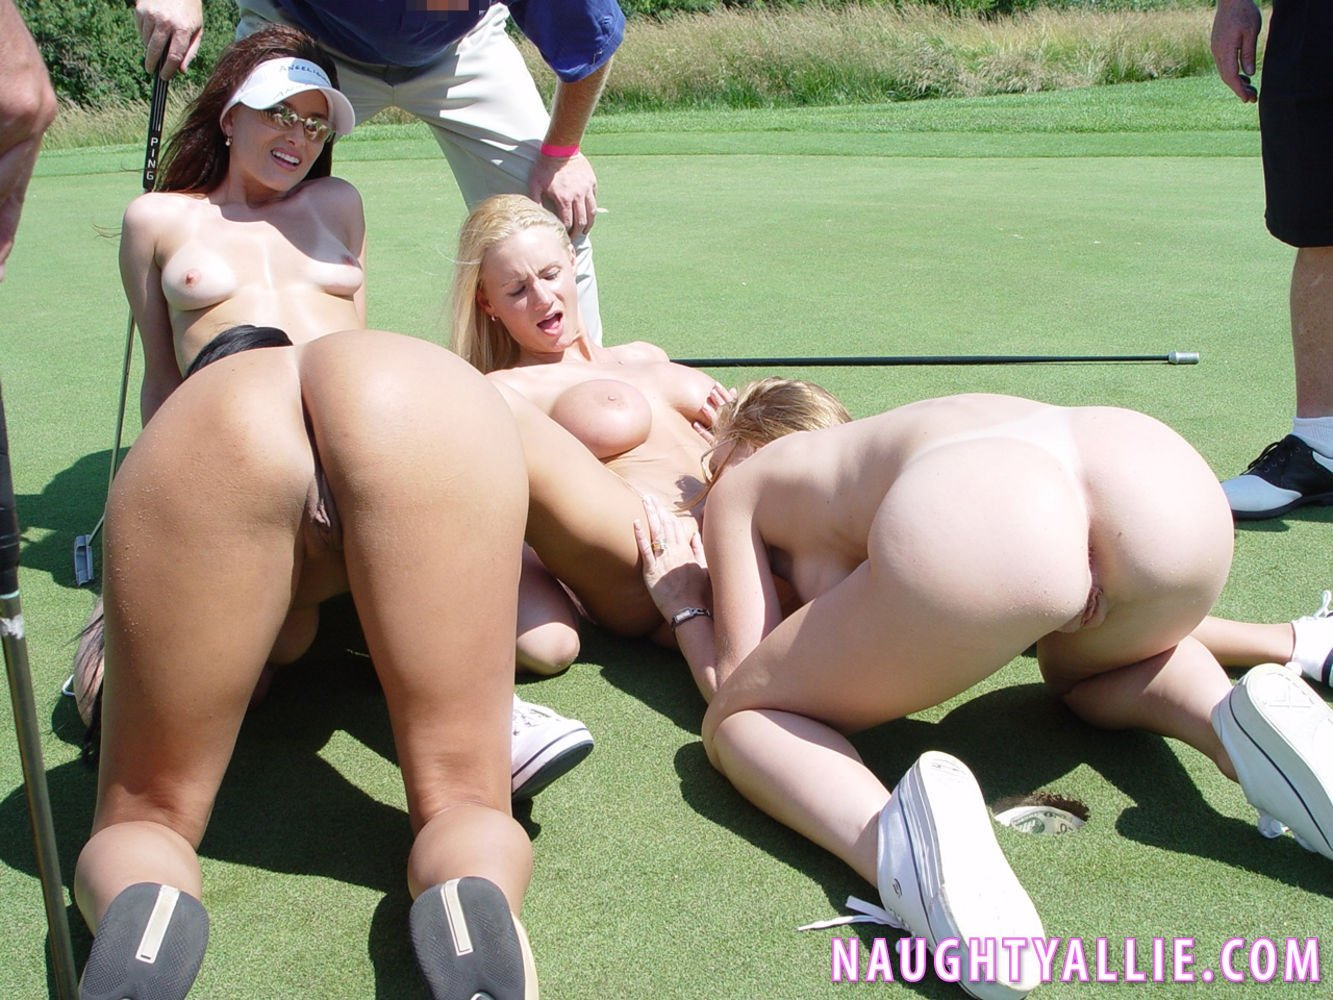 Horny Sluts Get Worked Up Over Holes And Balls While -1871